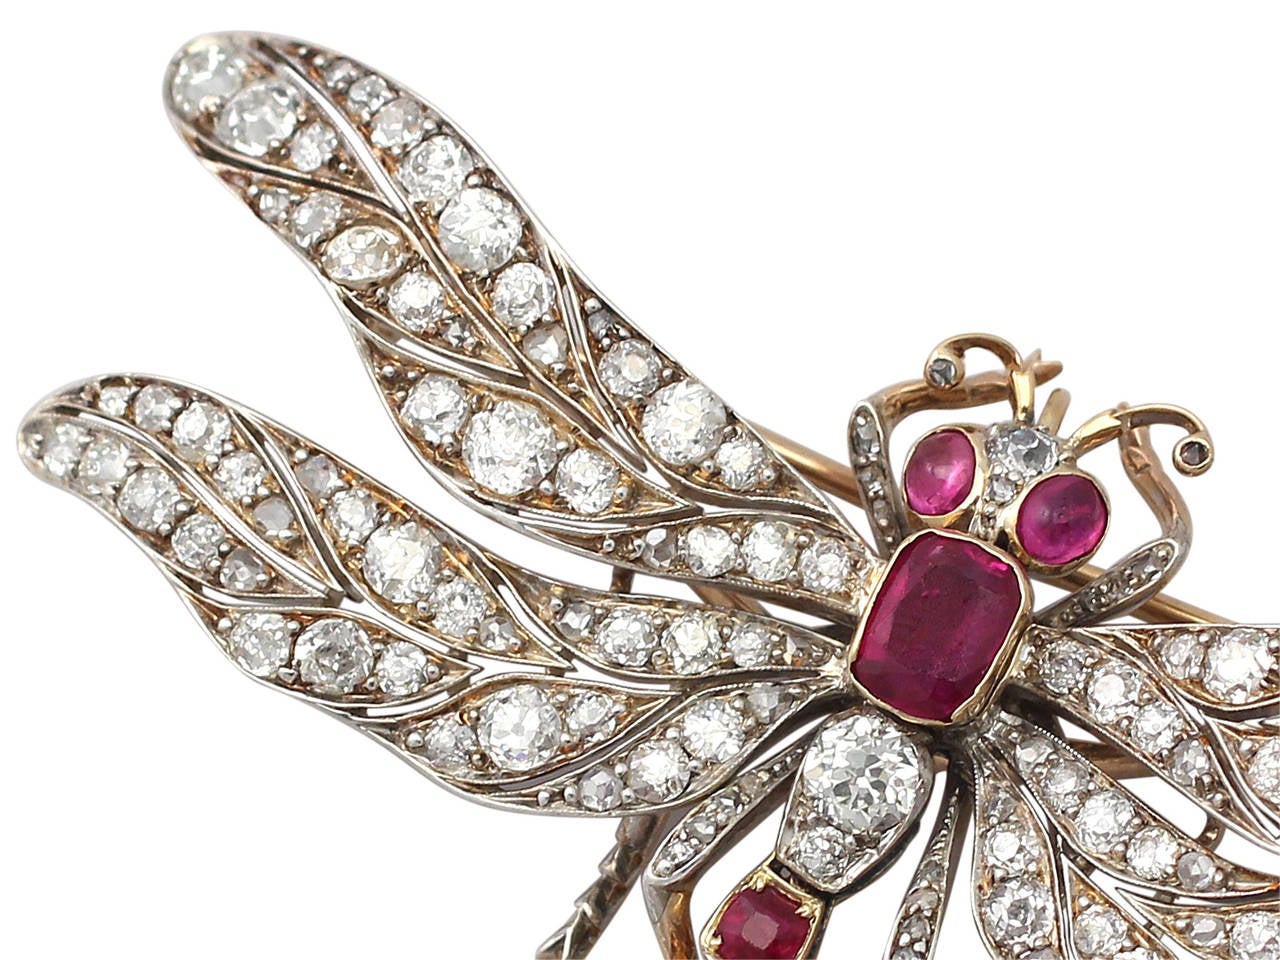 A large, stunning, fine and impressive antique 5.70 carat diamond and 3.30 carat ruby, 9 karat yellow gold dragonfly brooch; part of our antique jewelry and collections  This stunning, large antique Victorian brooch has been modelled in 9 k yellow